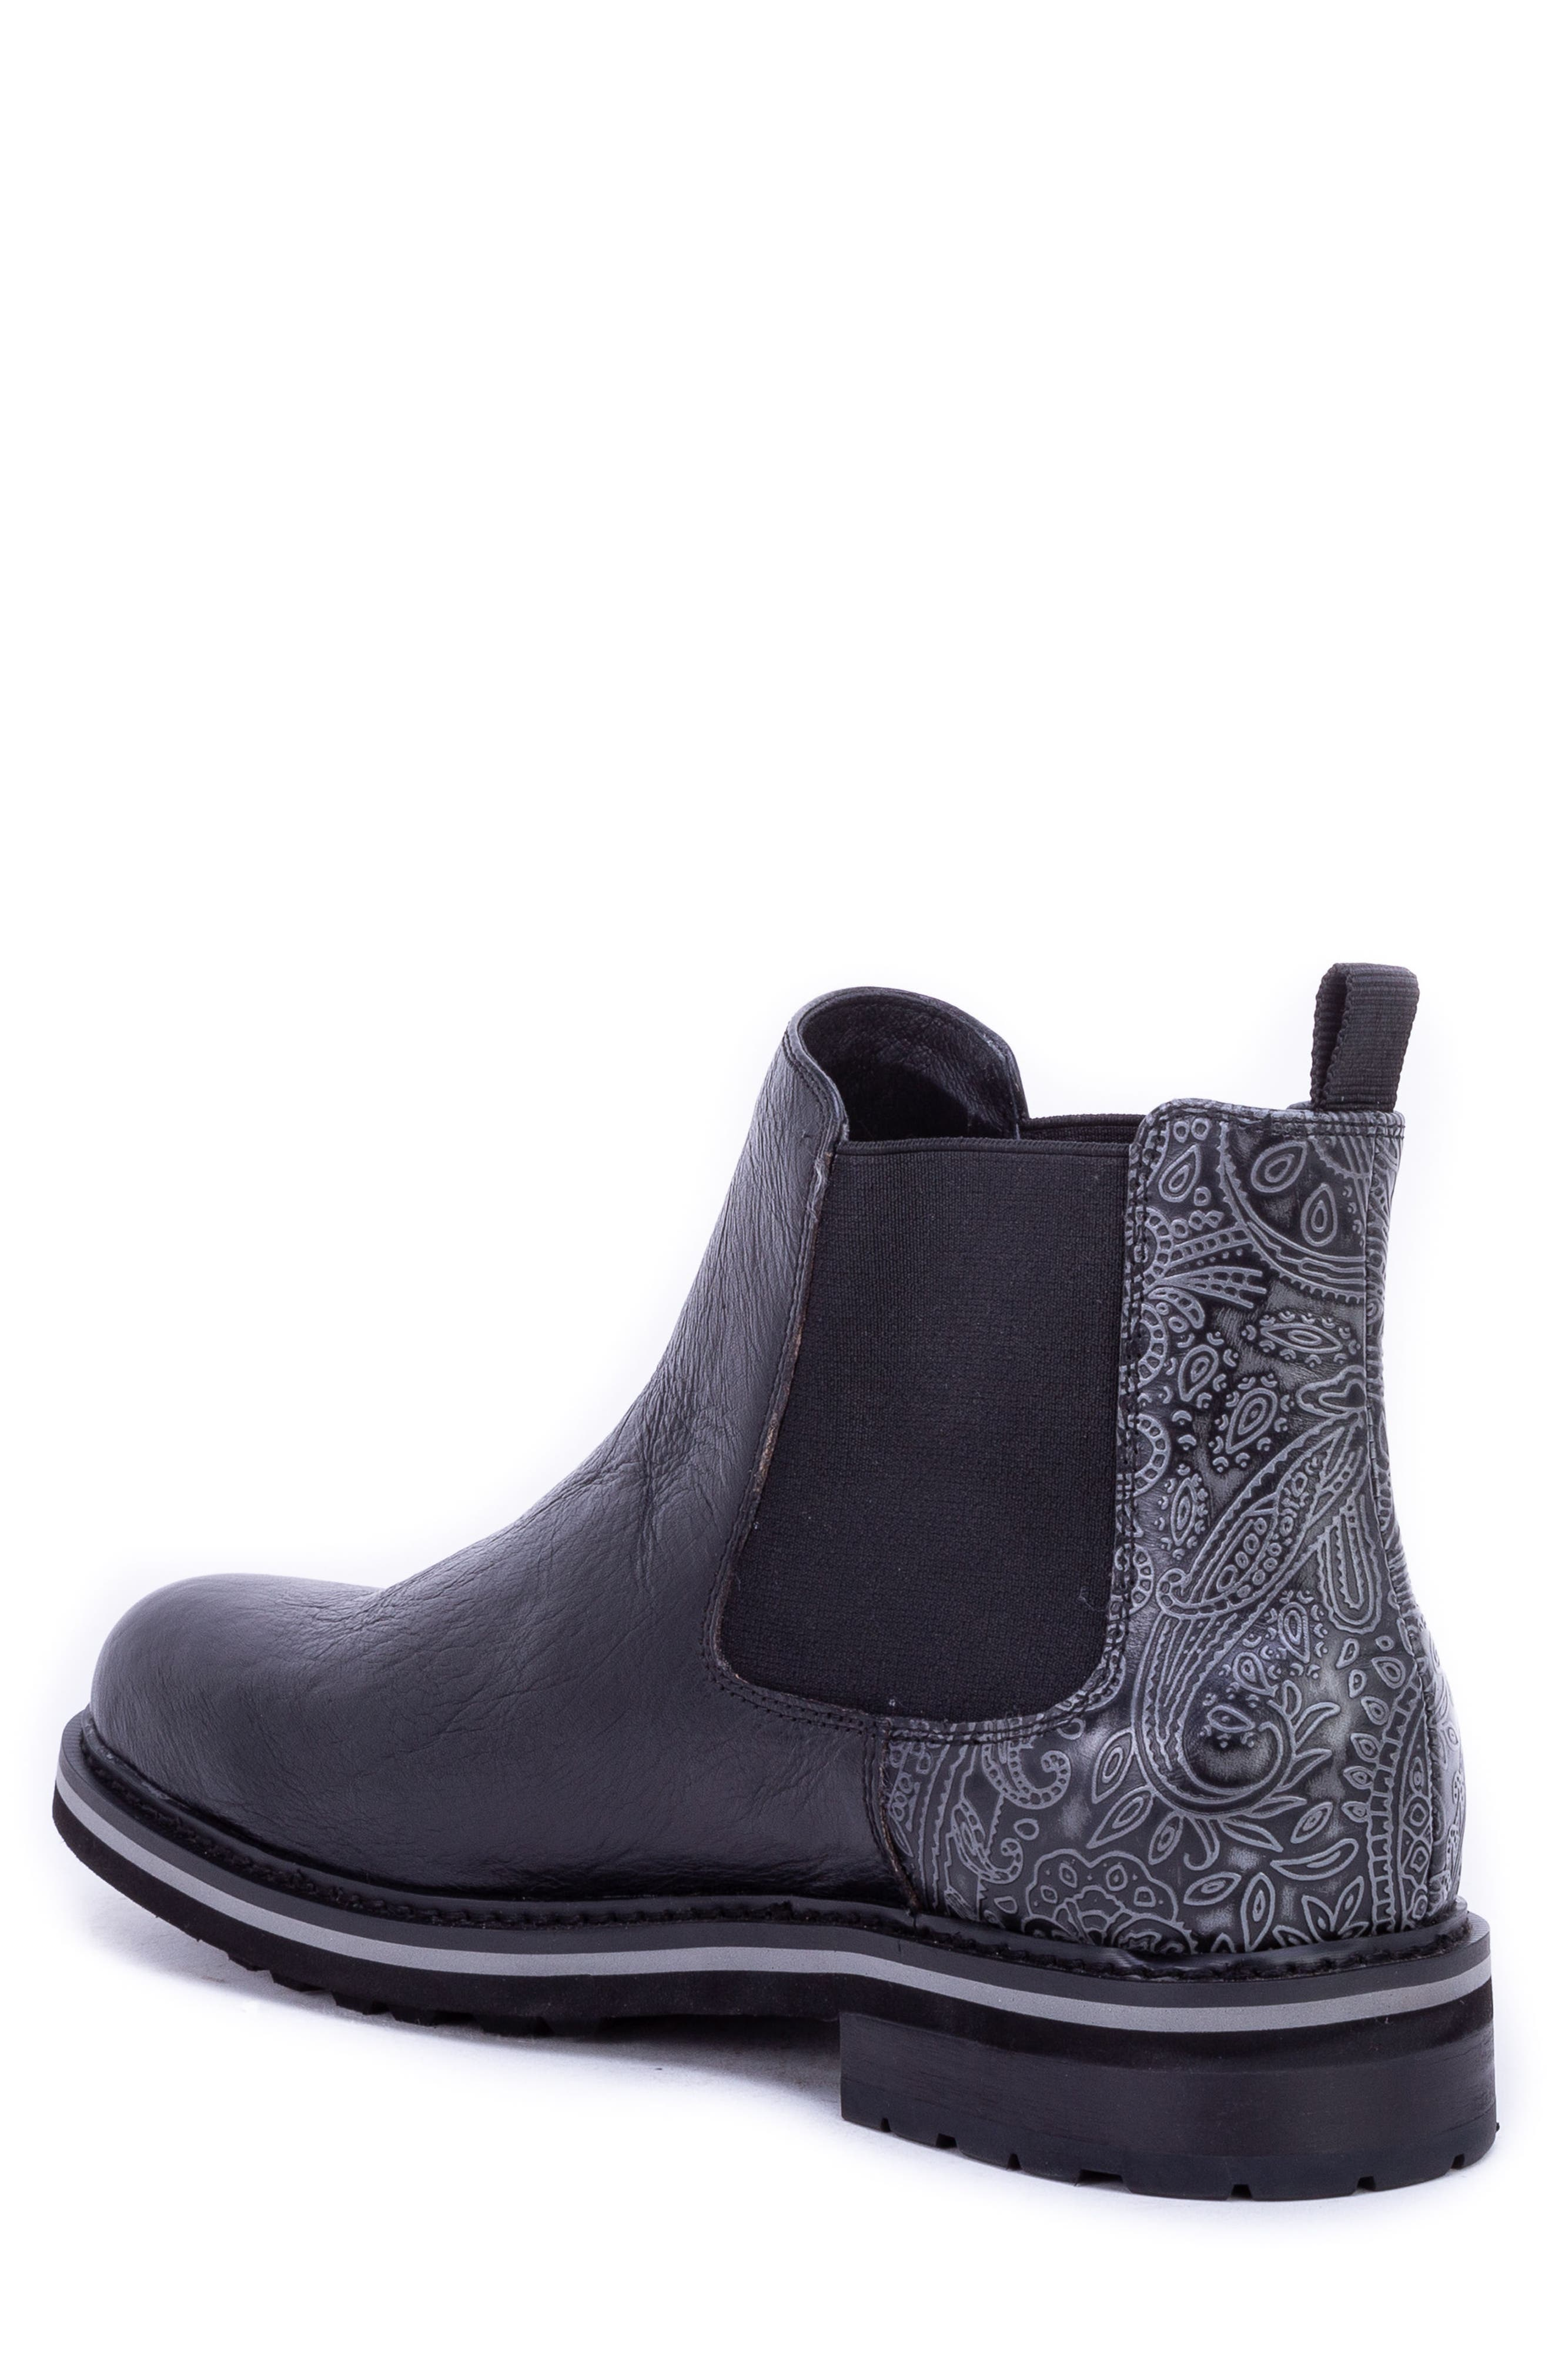 Yates Textured Chelsea Boot,                             Alternate thumbnail 2, color,                             BLACK LEATHER